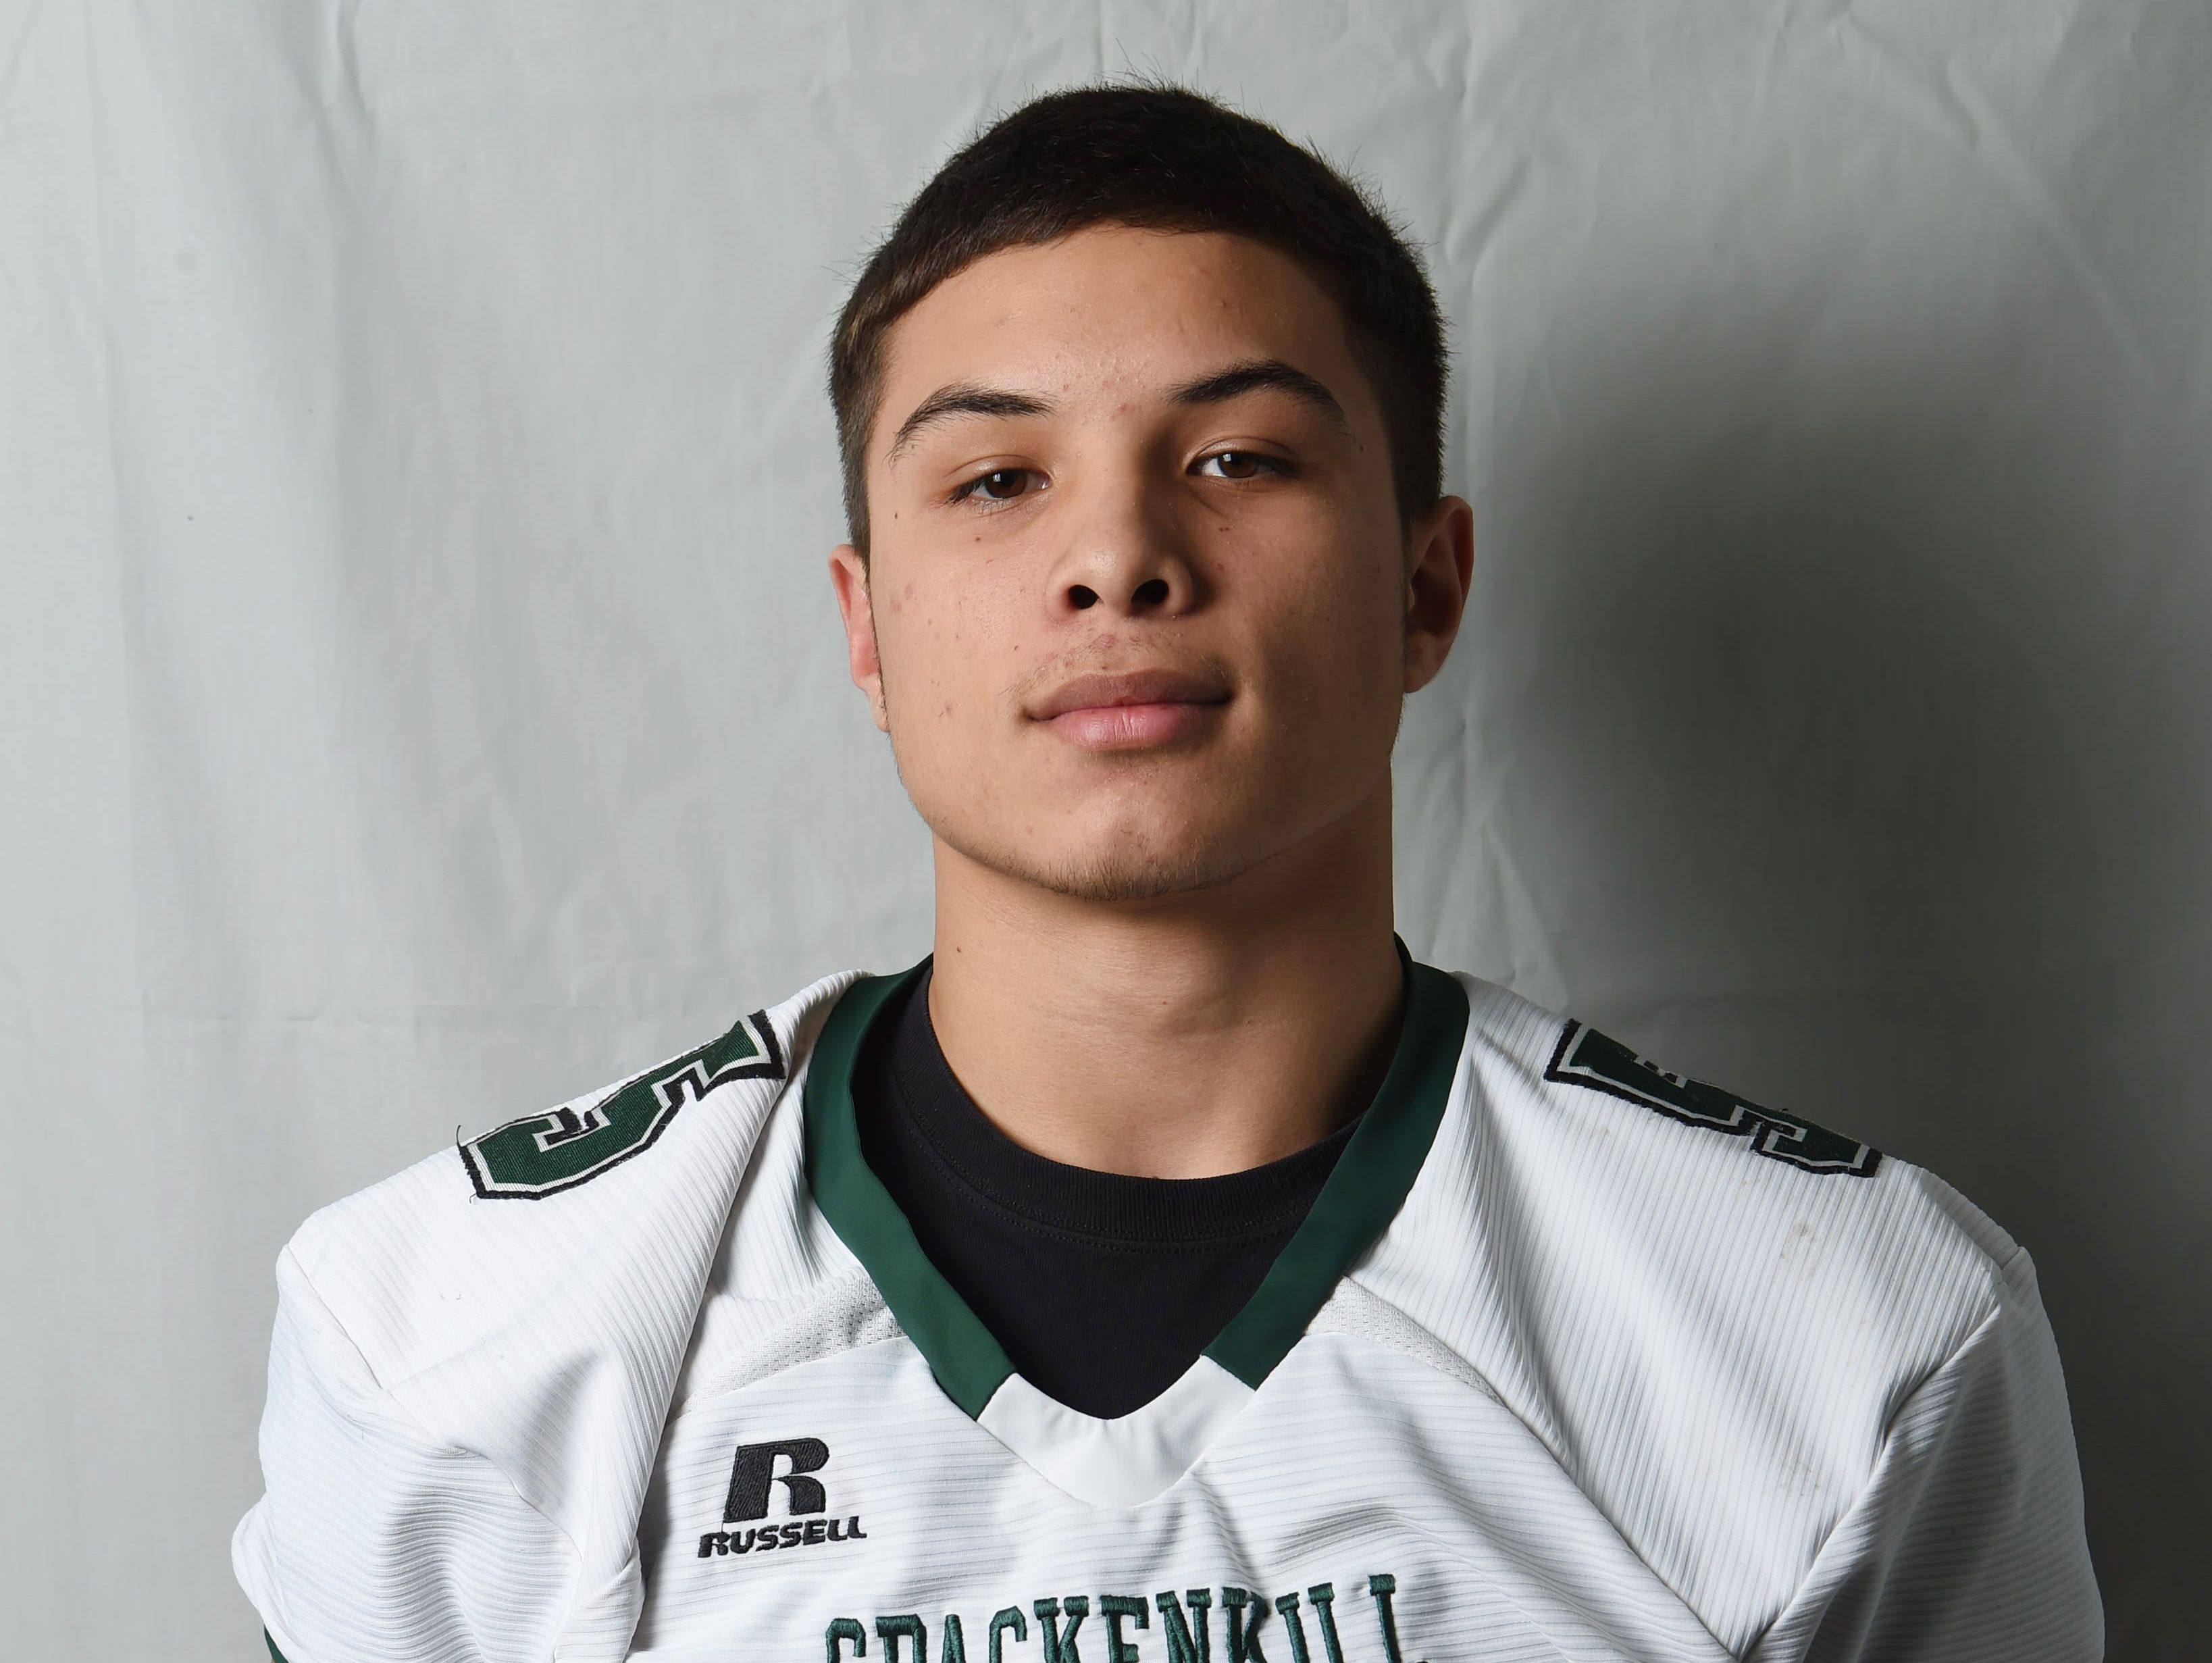 Camron Abalos from Spackenkill High School is the Quarterback of the Year.